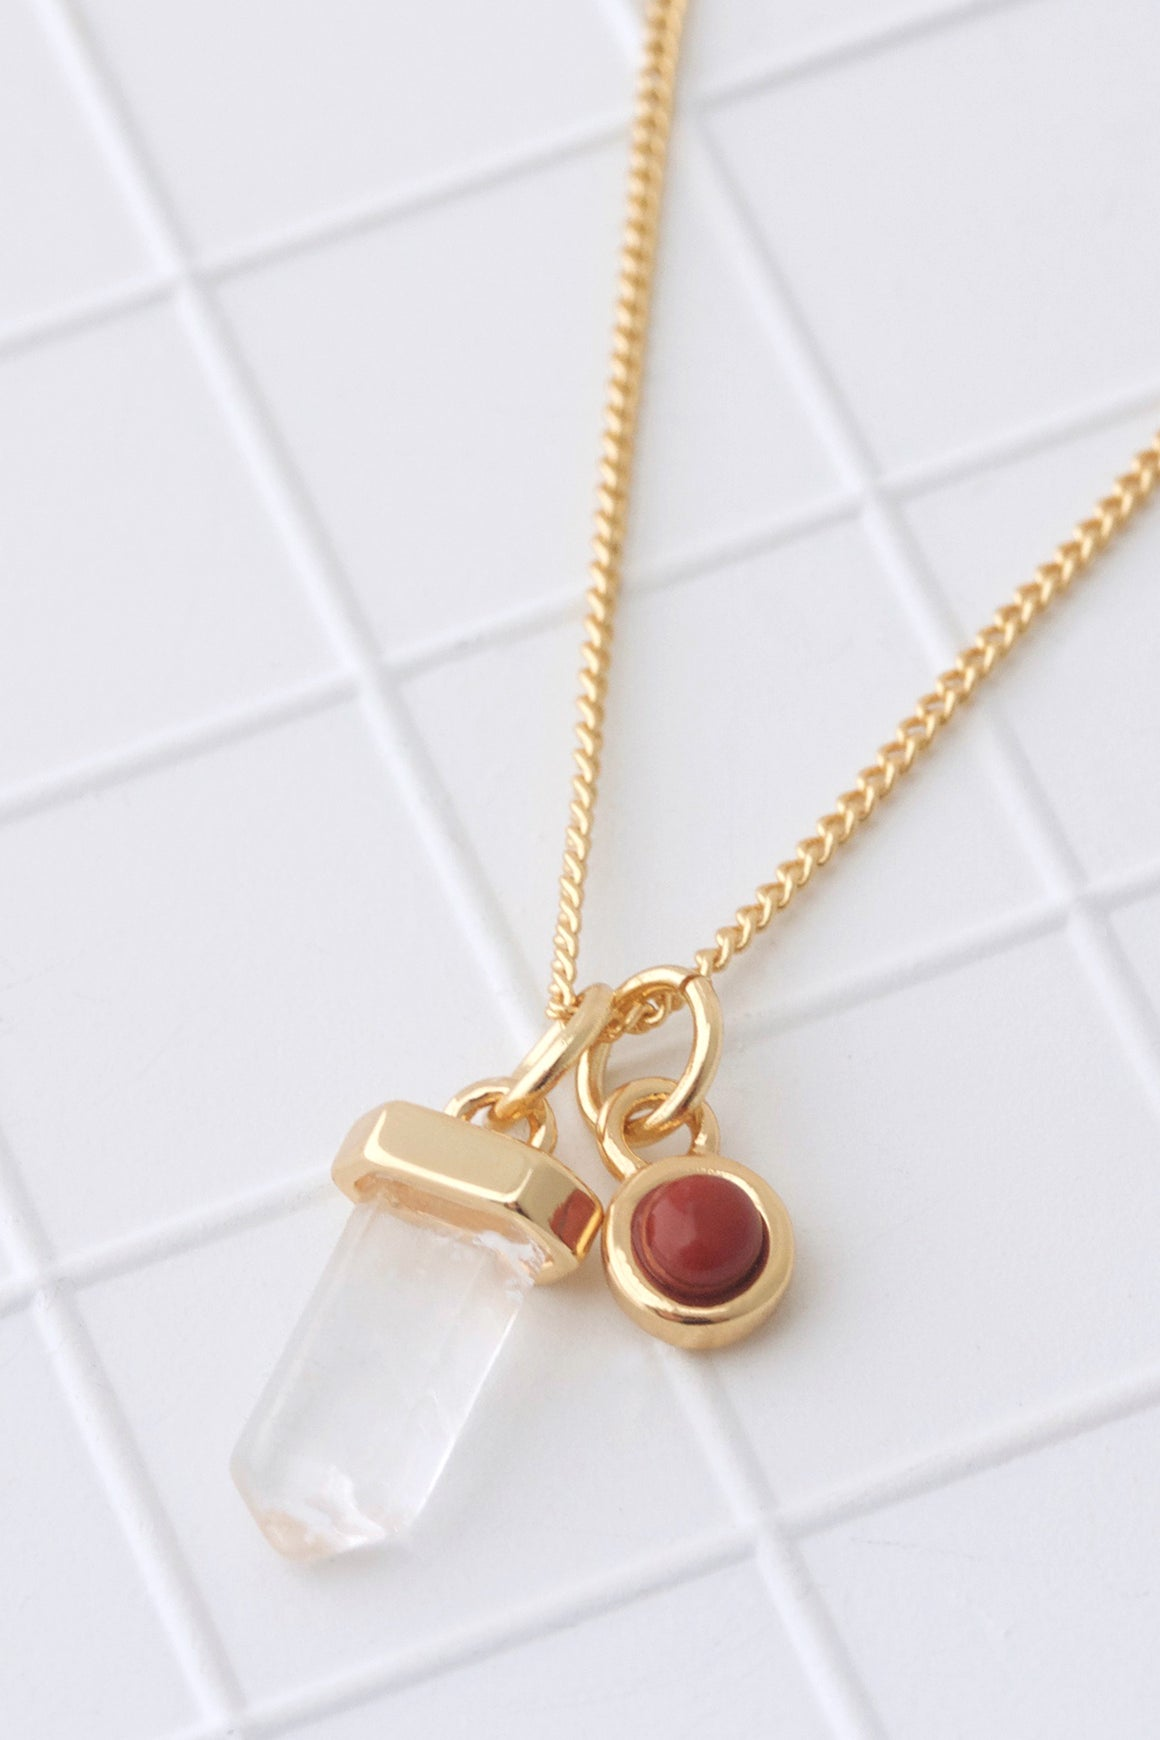 Birthstone Necklace January/Garnet